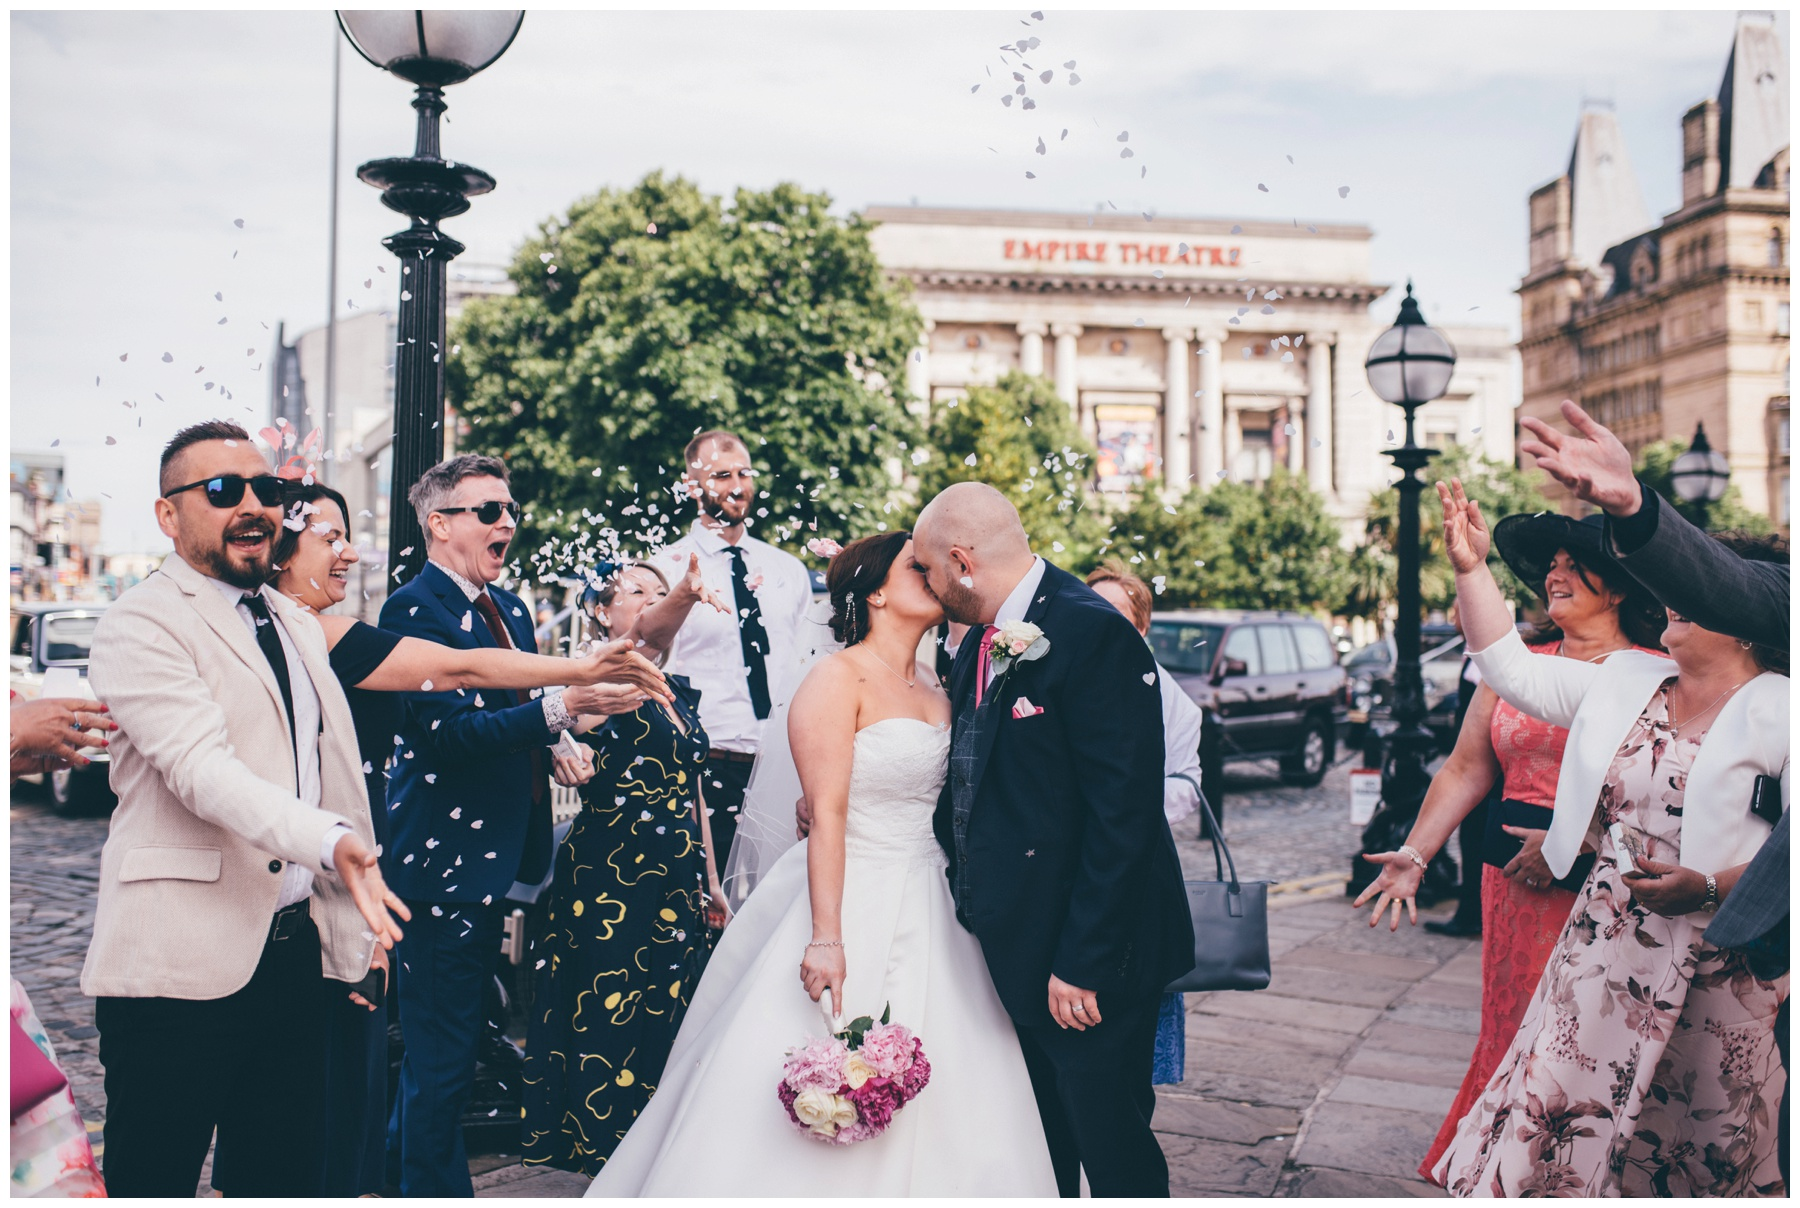 Confetti gets thrown at the bride and groom outside St Georges Hall in Liverpool.